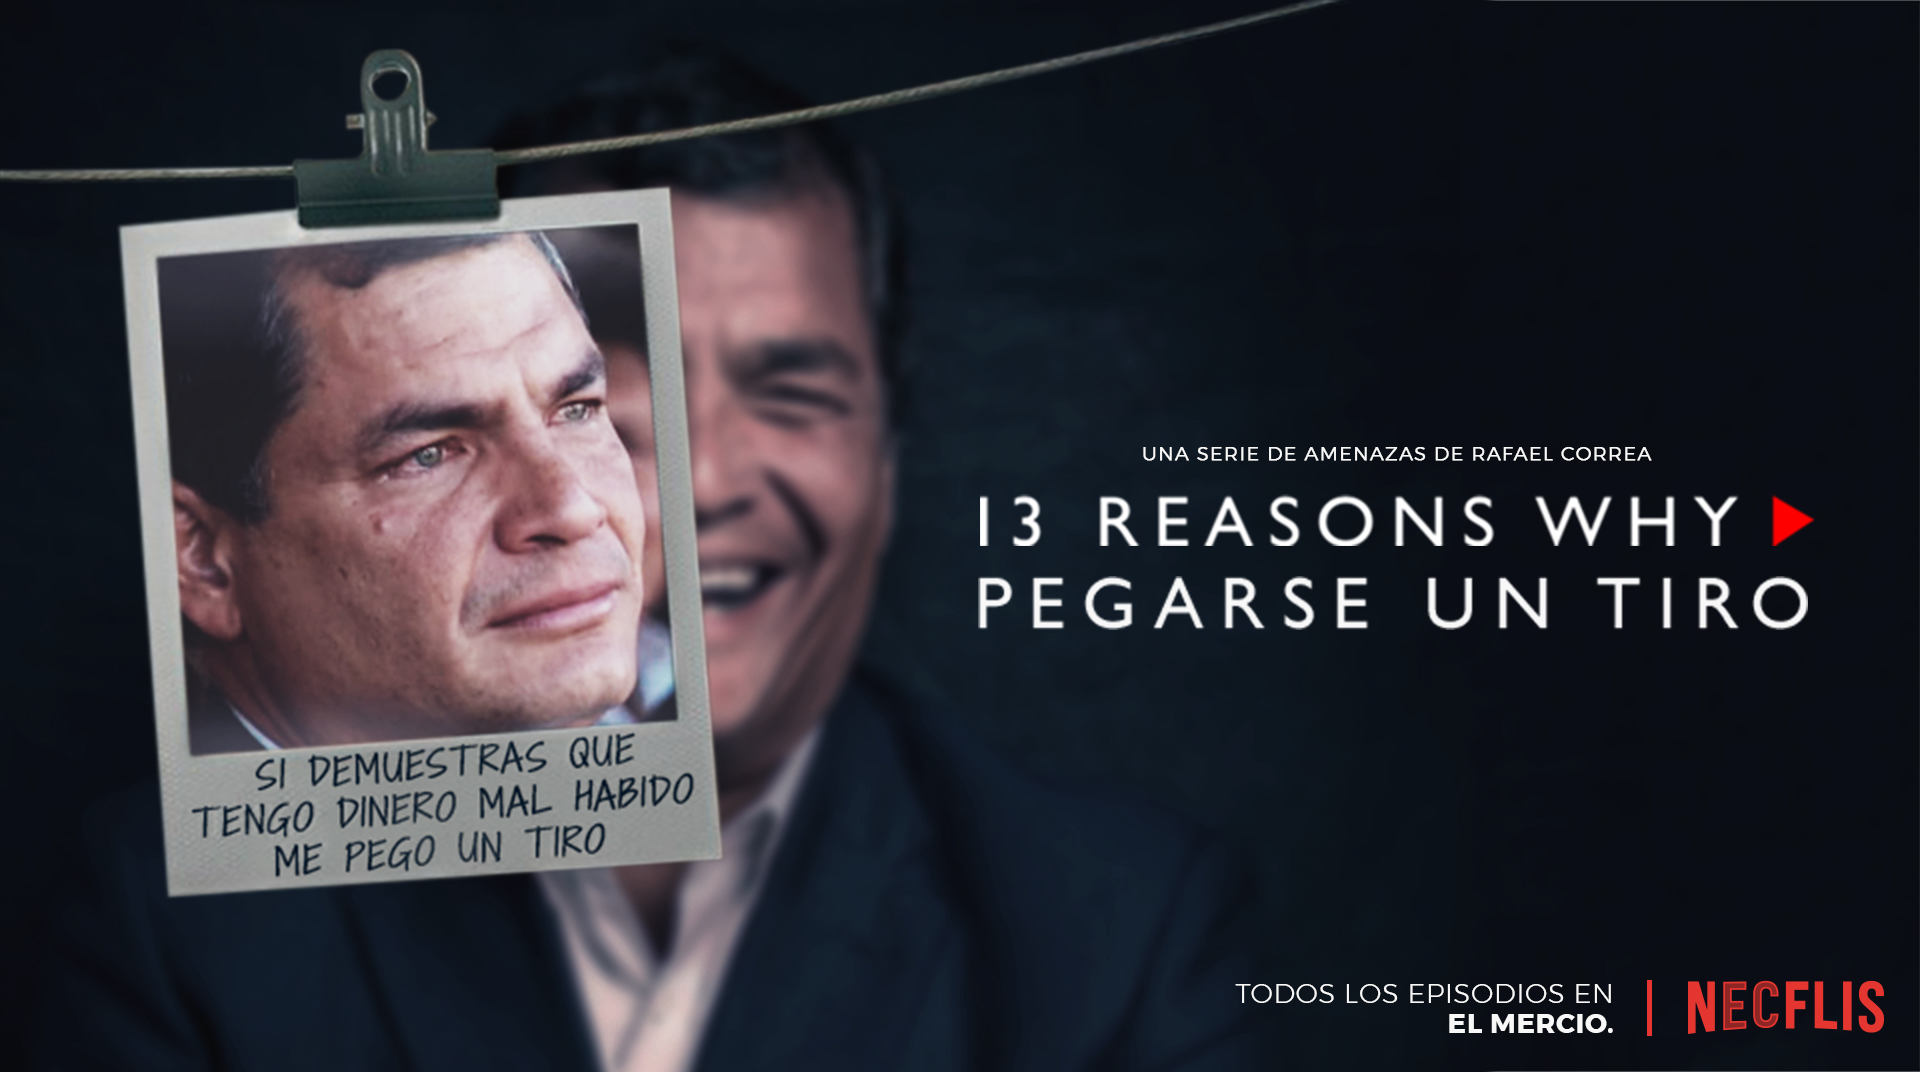 13 Reasons Why - Rafael Correa se pega un tiro